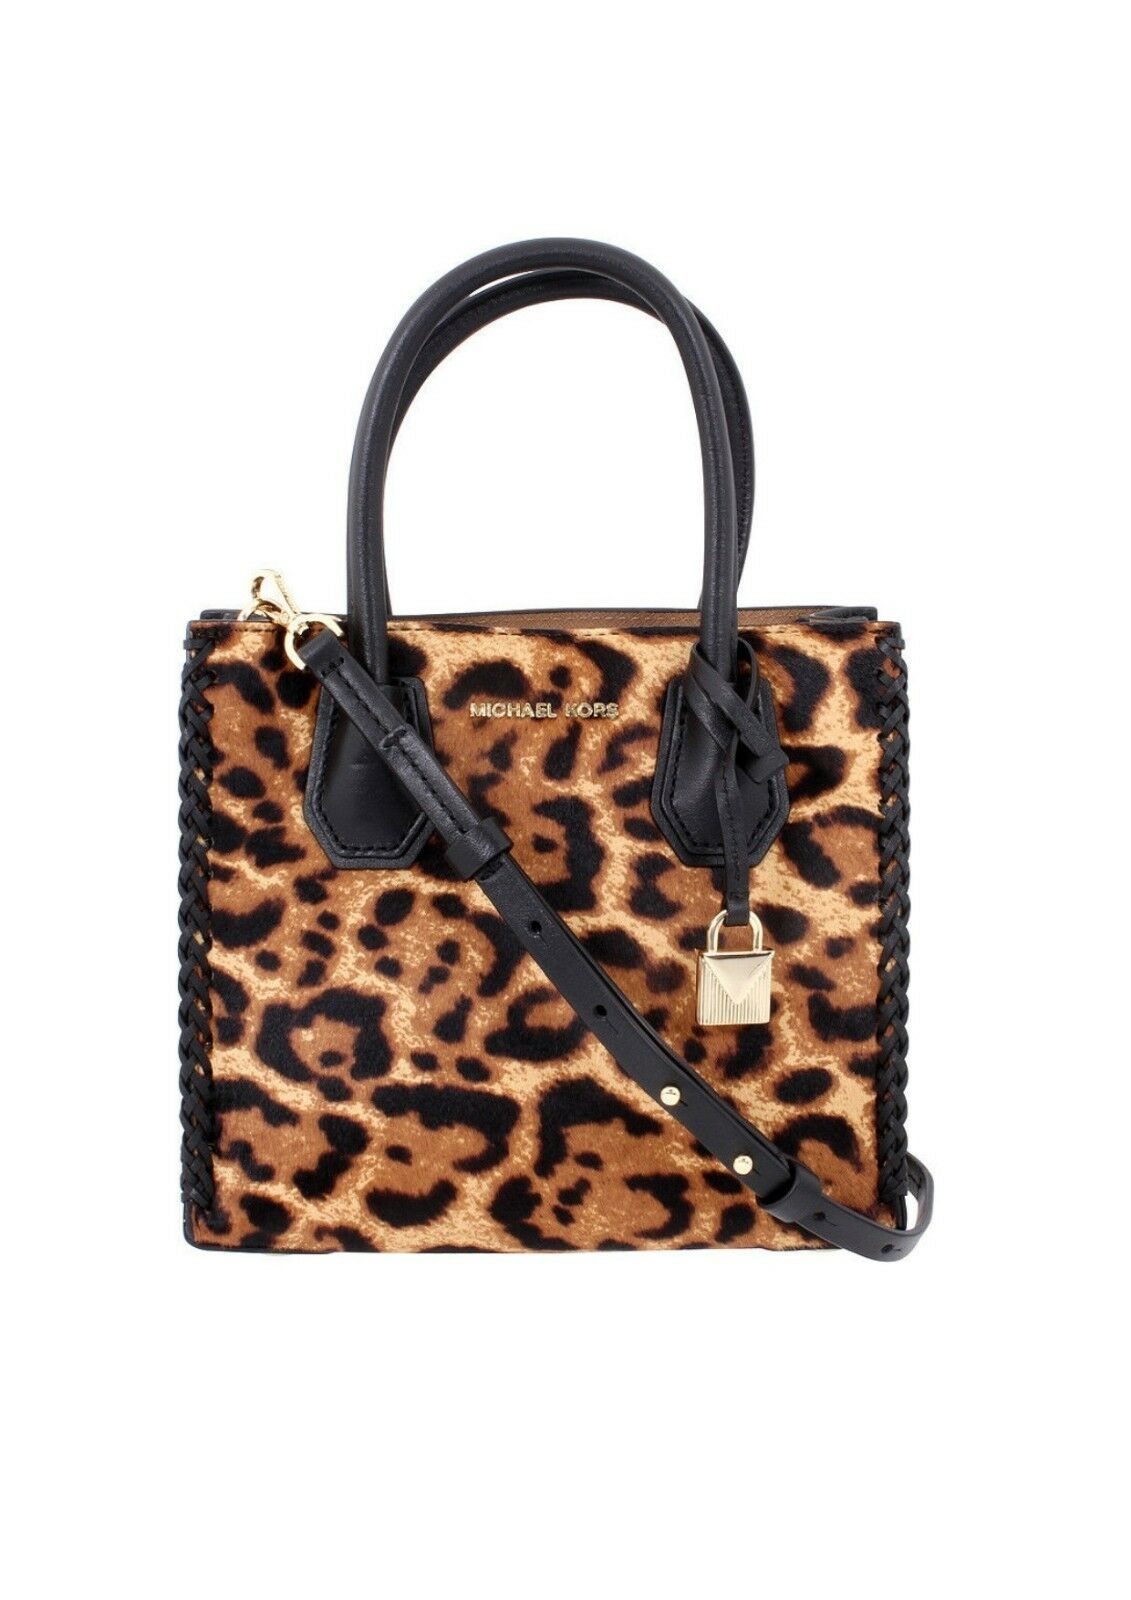 961a6e036aa2 Michael Kors Mercer Leopard Calf Hair Crossbody Butterscotch With ...